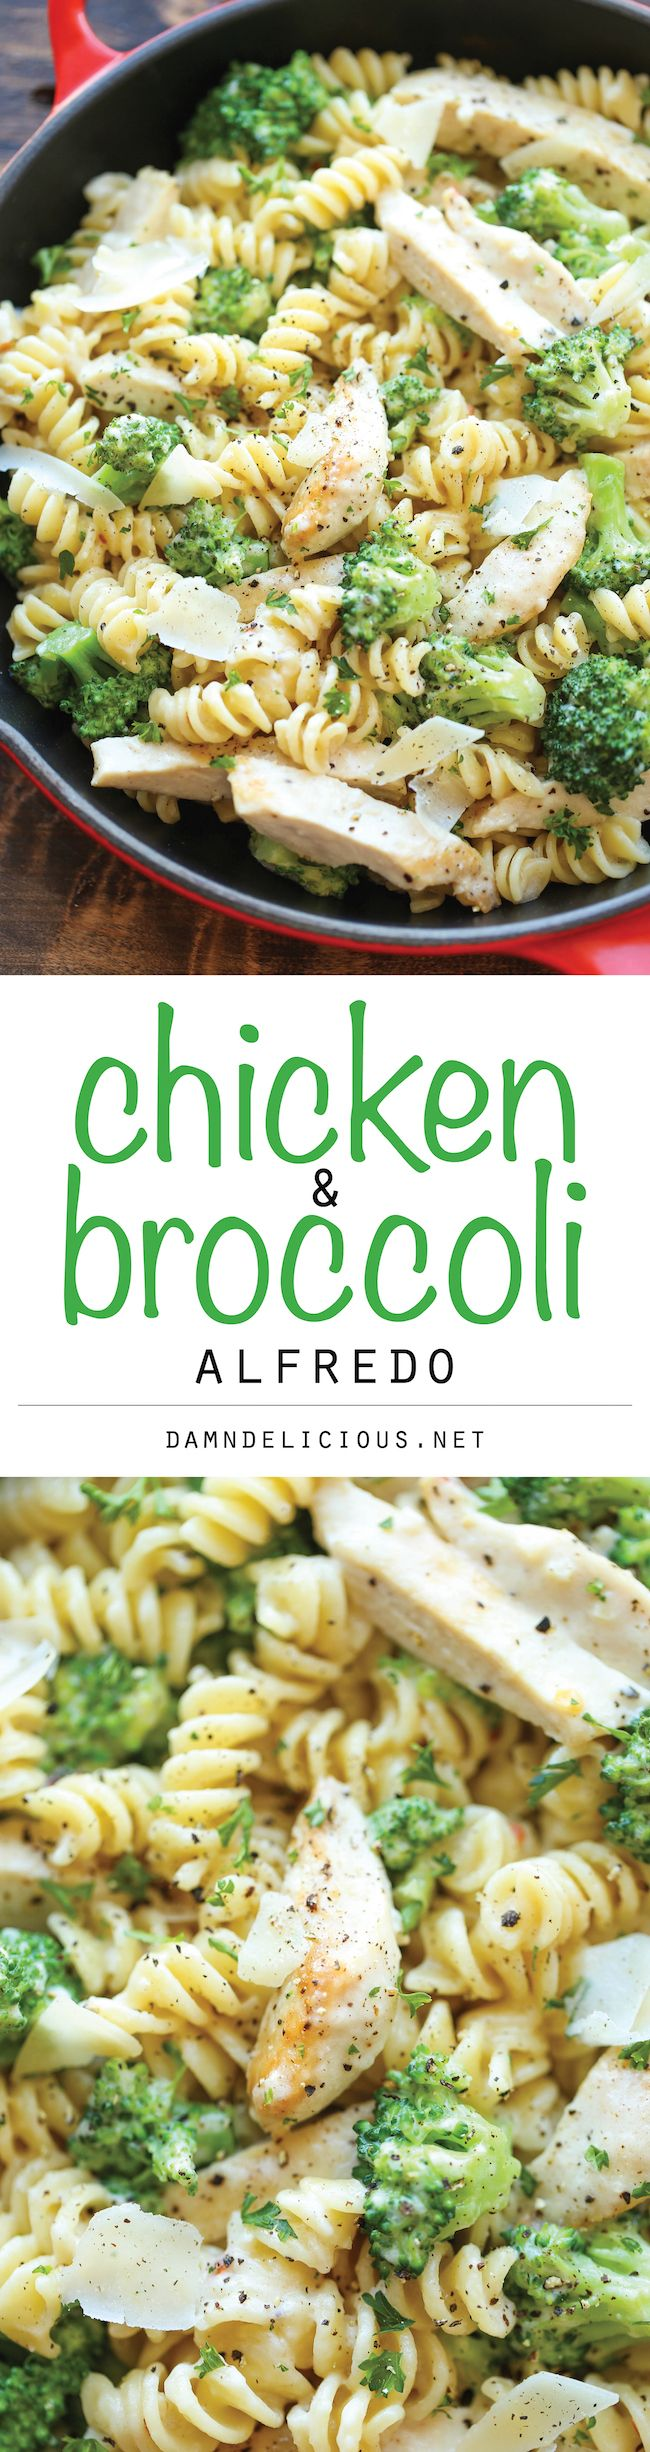 Chicken and Broccoli Alfredo @damndelicious